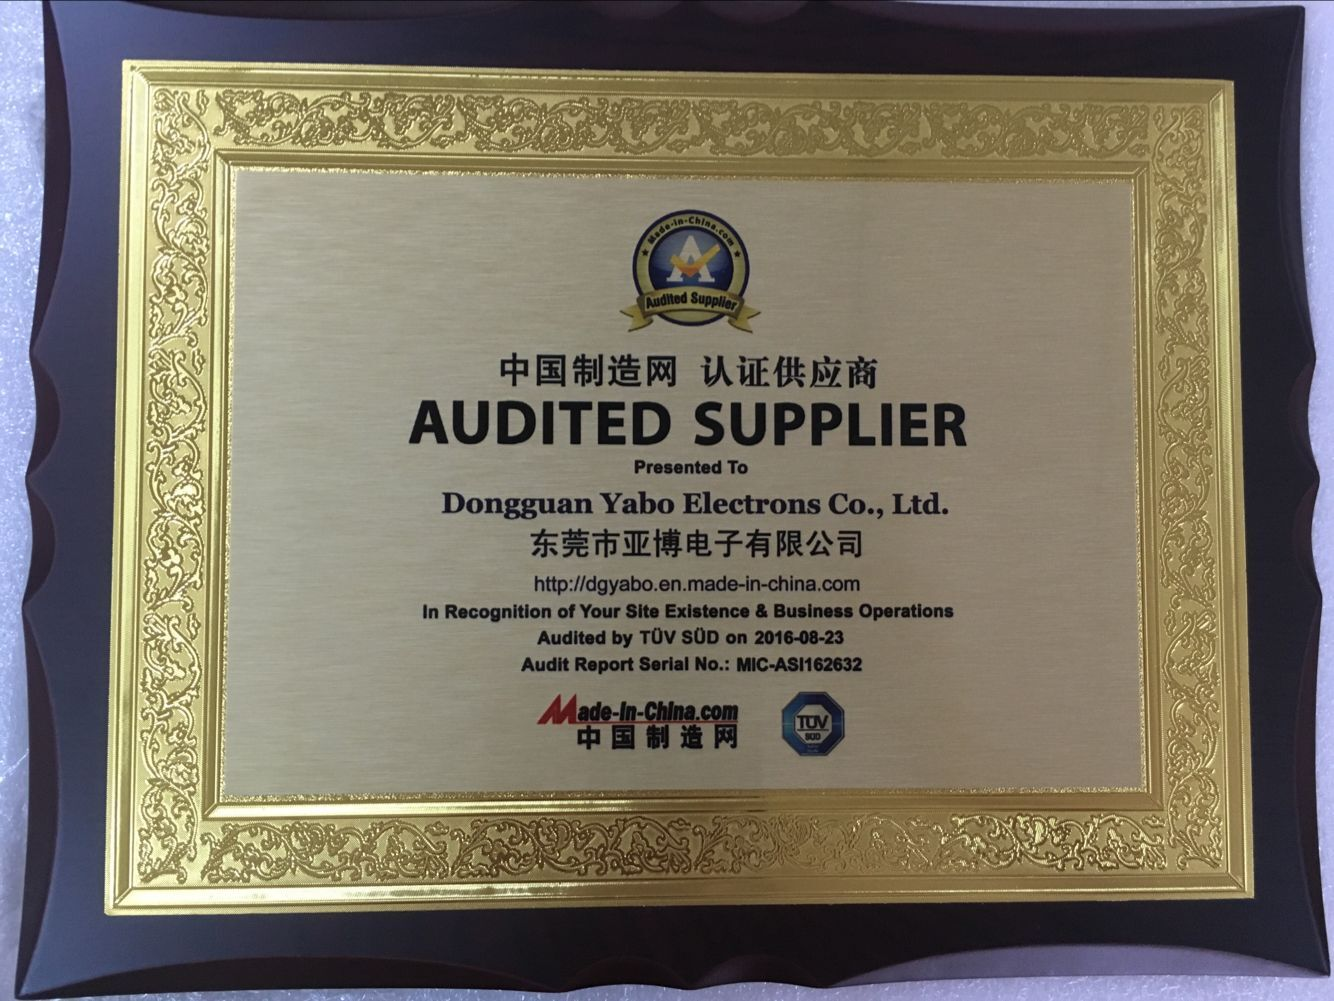 Certificate of manufacturing network in China